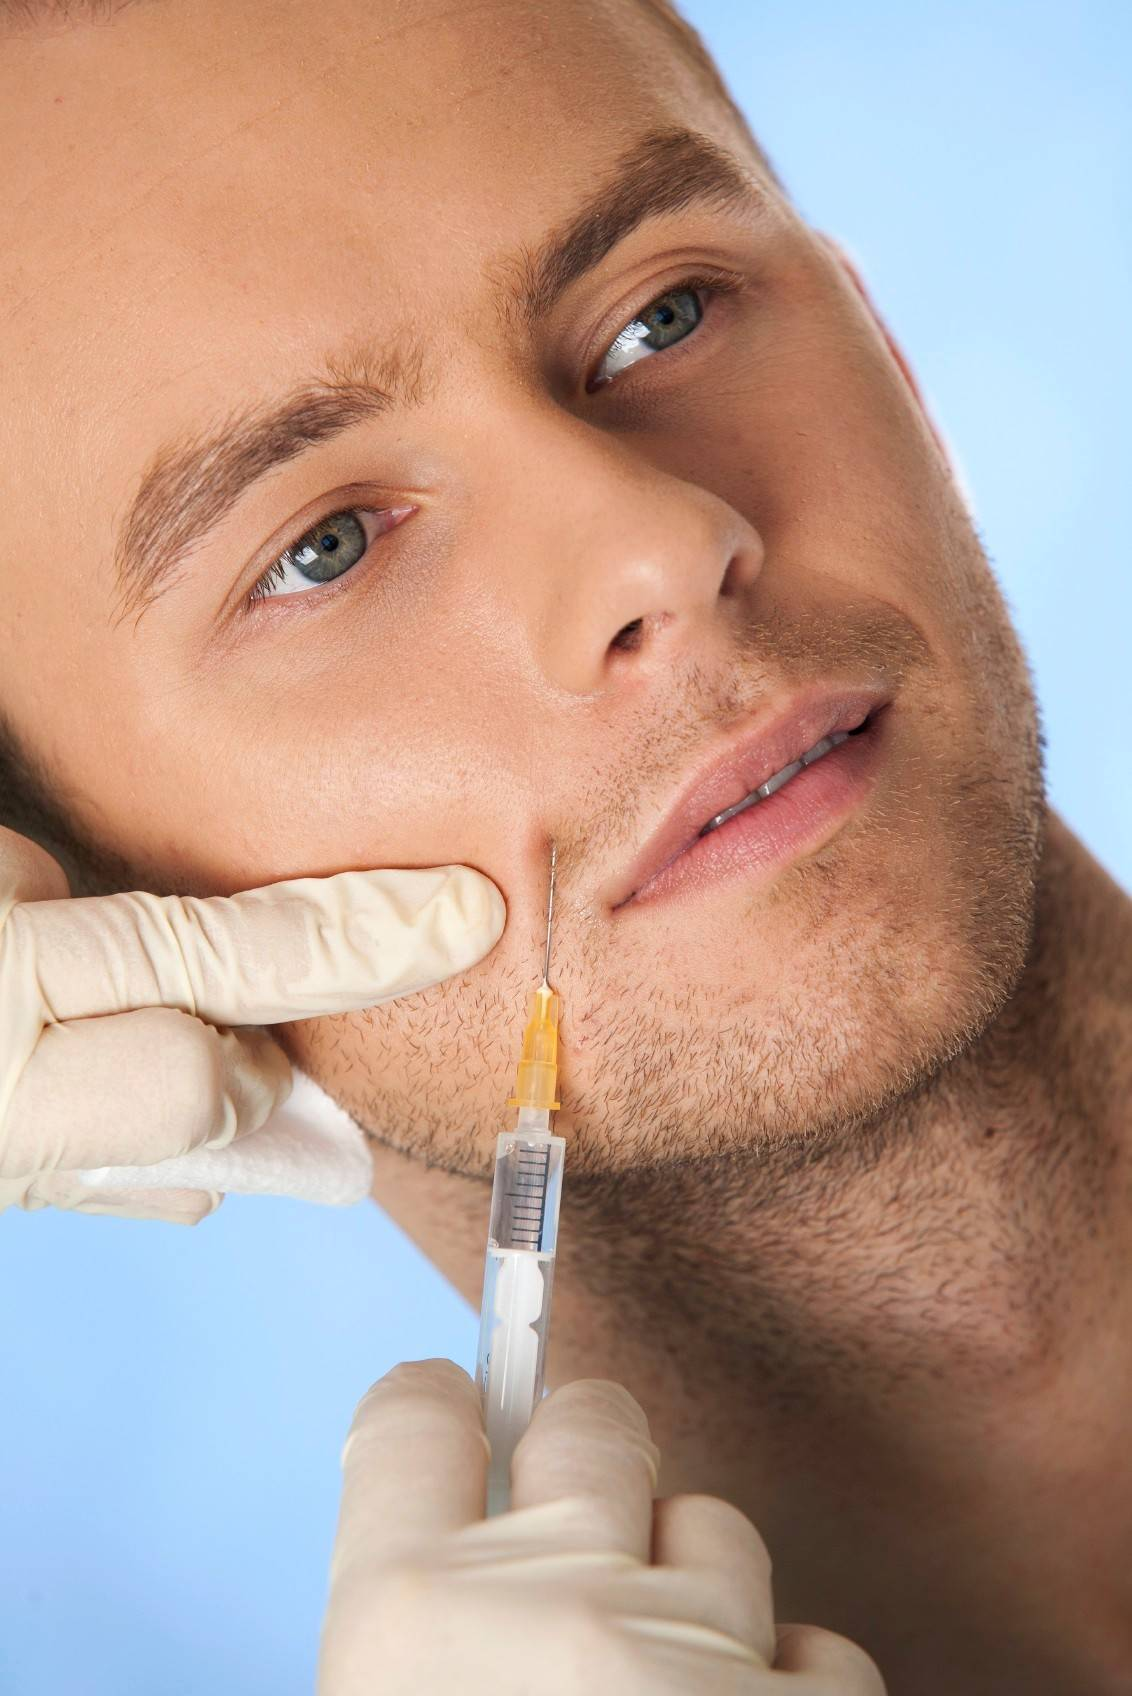 Dermatologists have seen growth in the number of men seeking to improve their appearance.